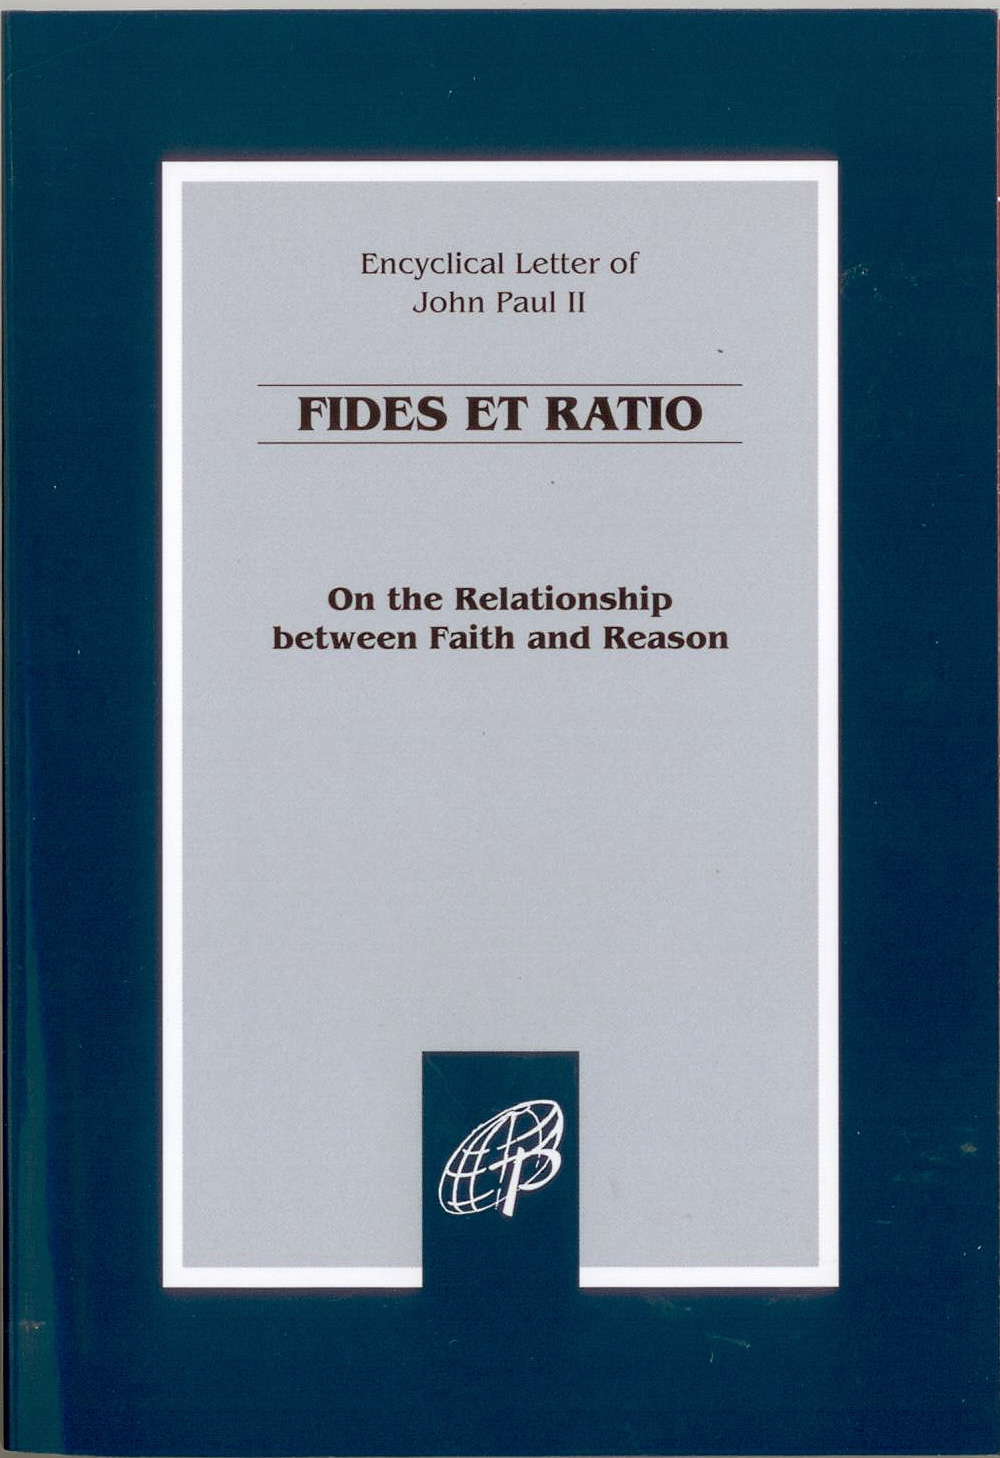 Fides Et Ratio: On the Relationship between Faith and Reason